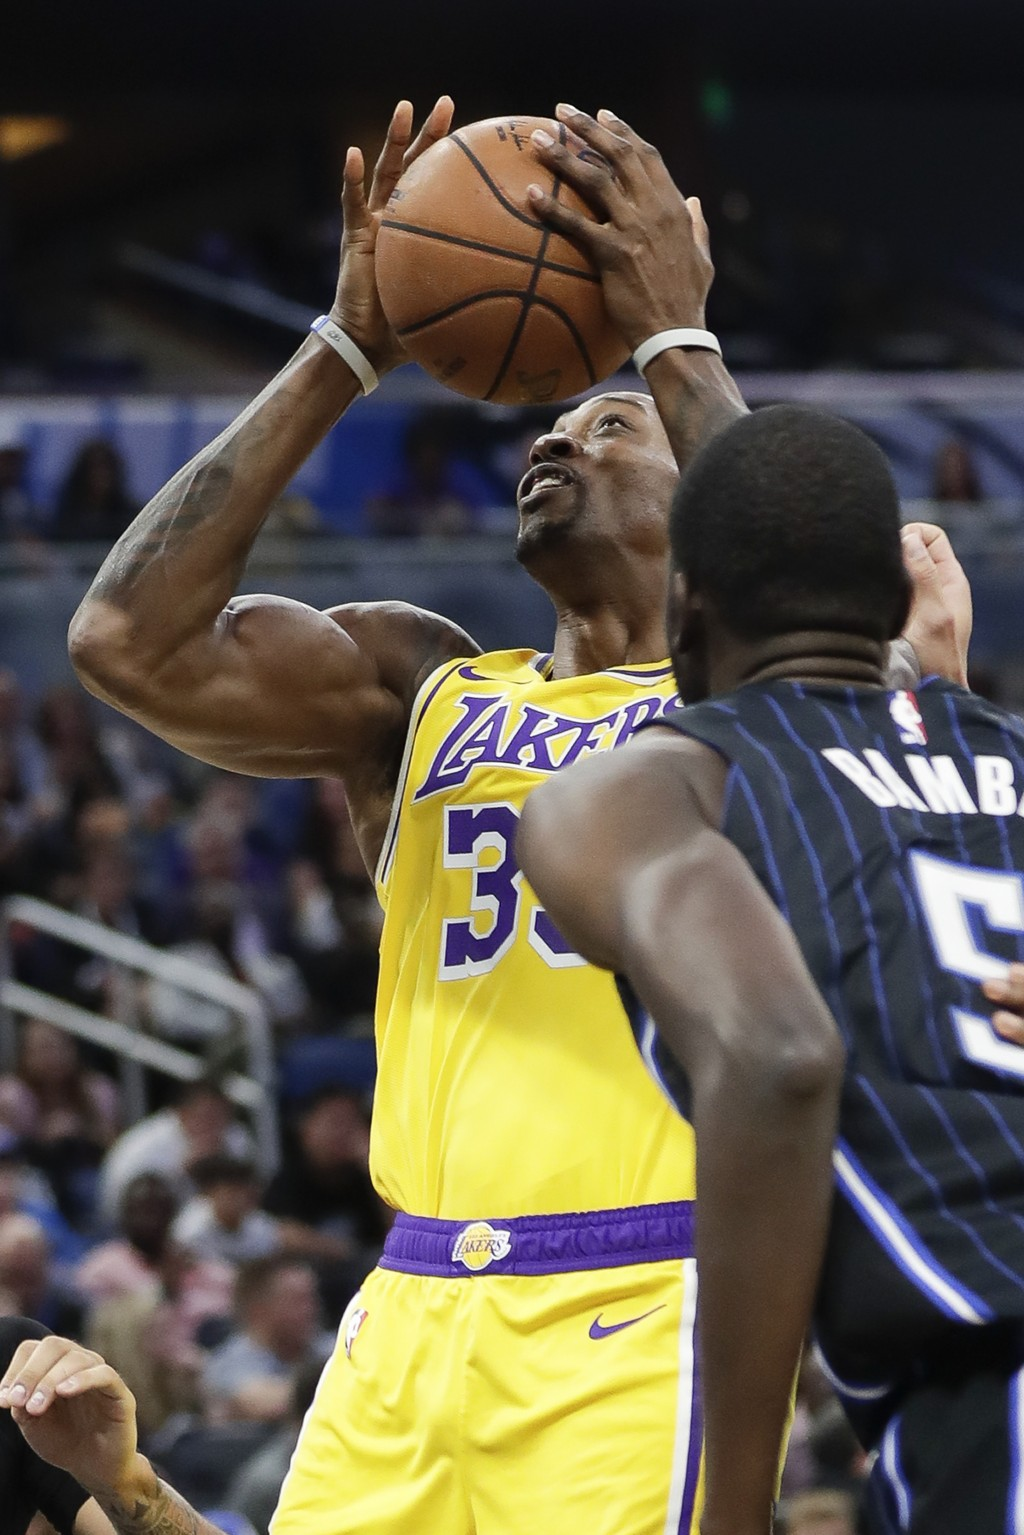 Los Angeles Lakers center Dwight Howard, left, works to get off a shot over Orlando Magic's Mo Bamba, right, during the first half of an NBA basketbal...